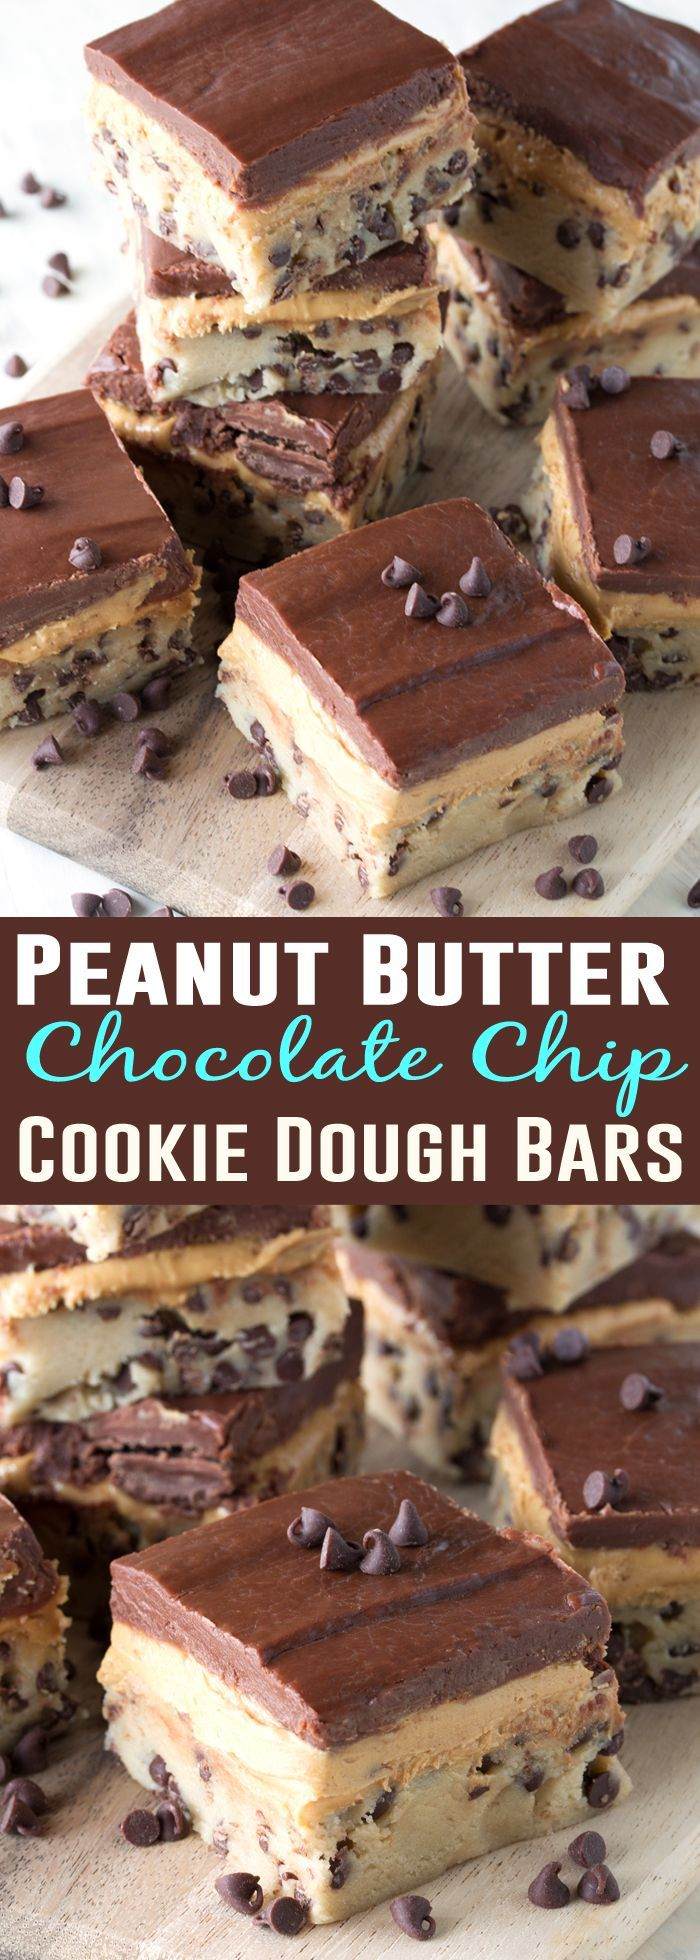 chip cookie dough, peanut butter cup filling, and a chocolate ganache ...